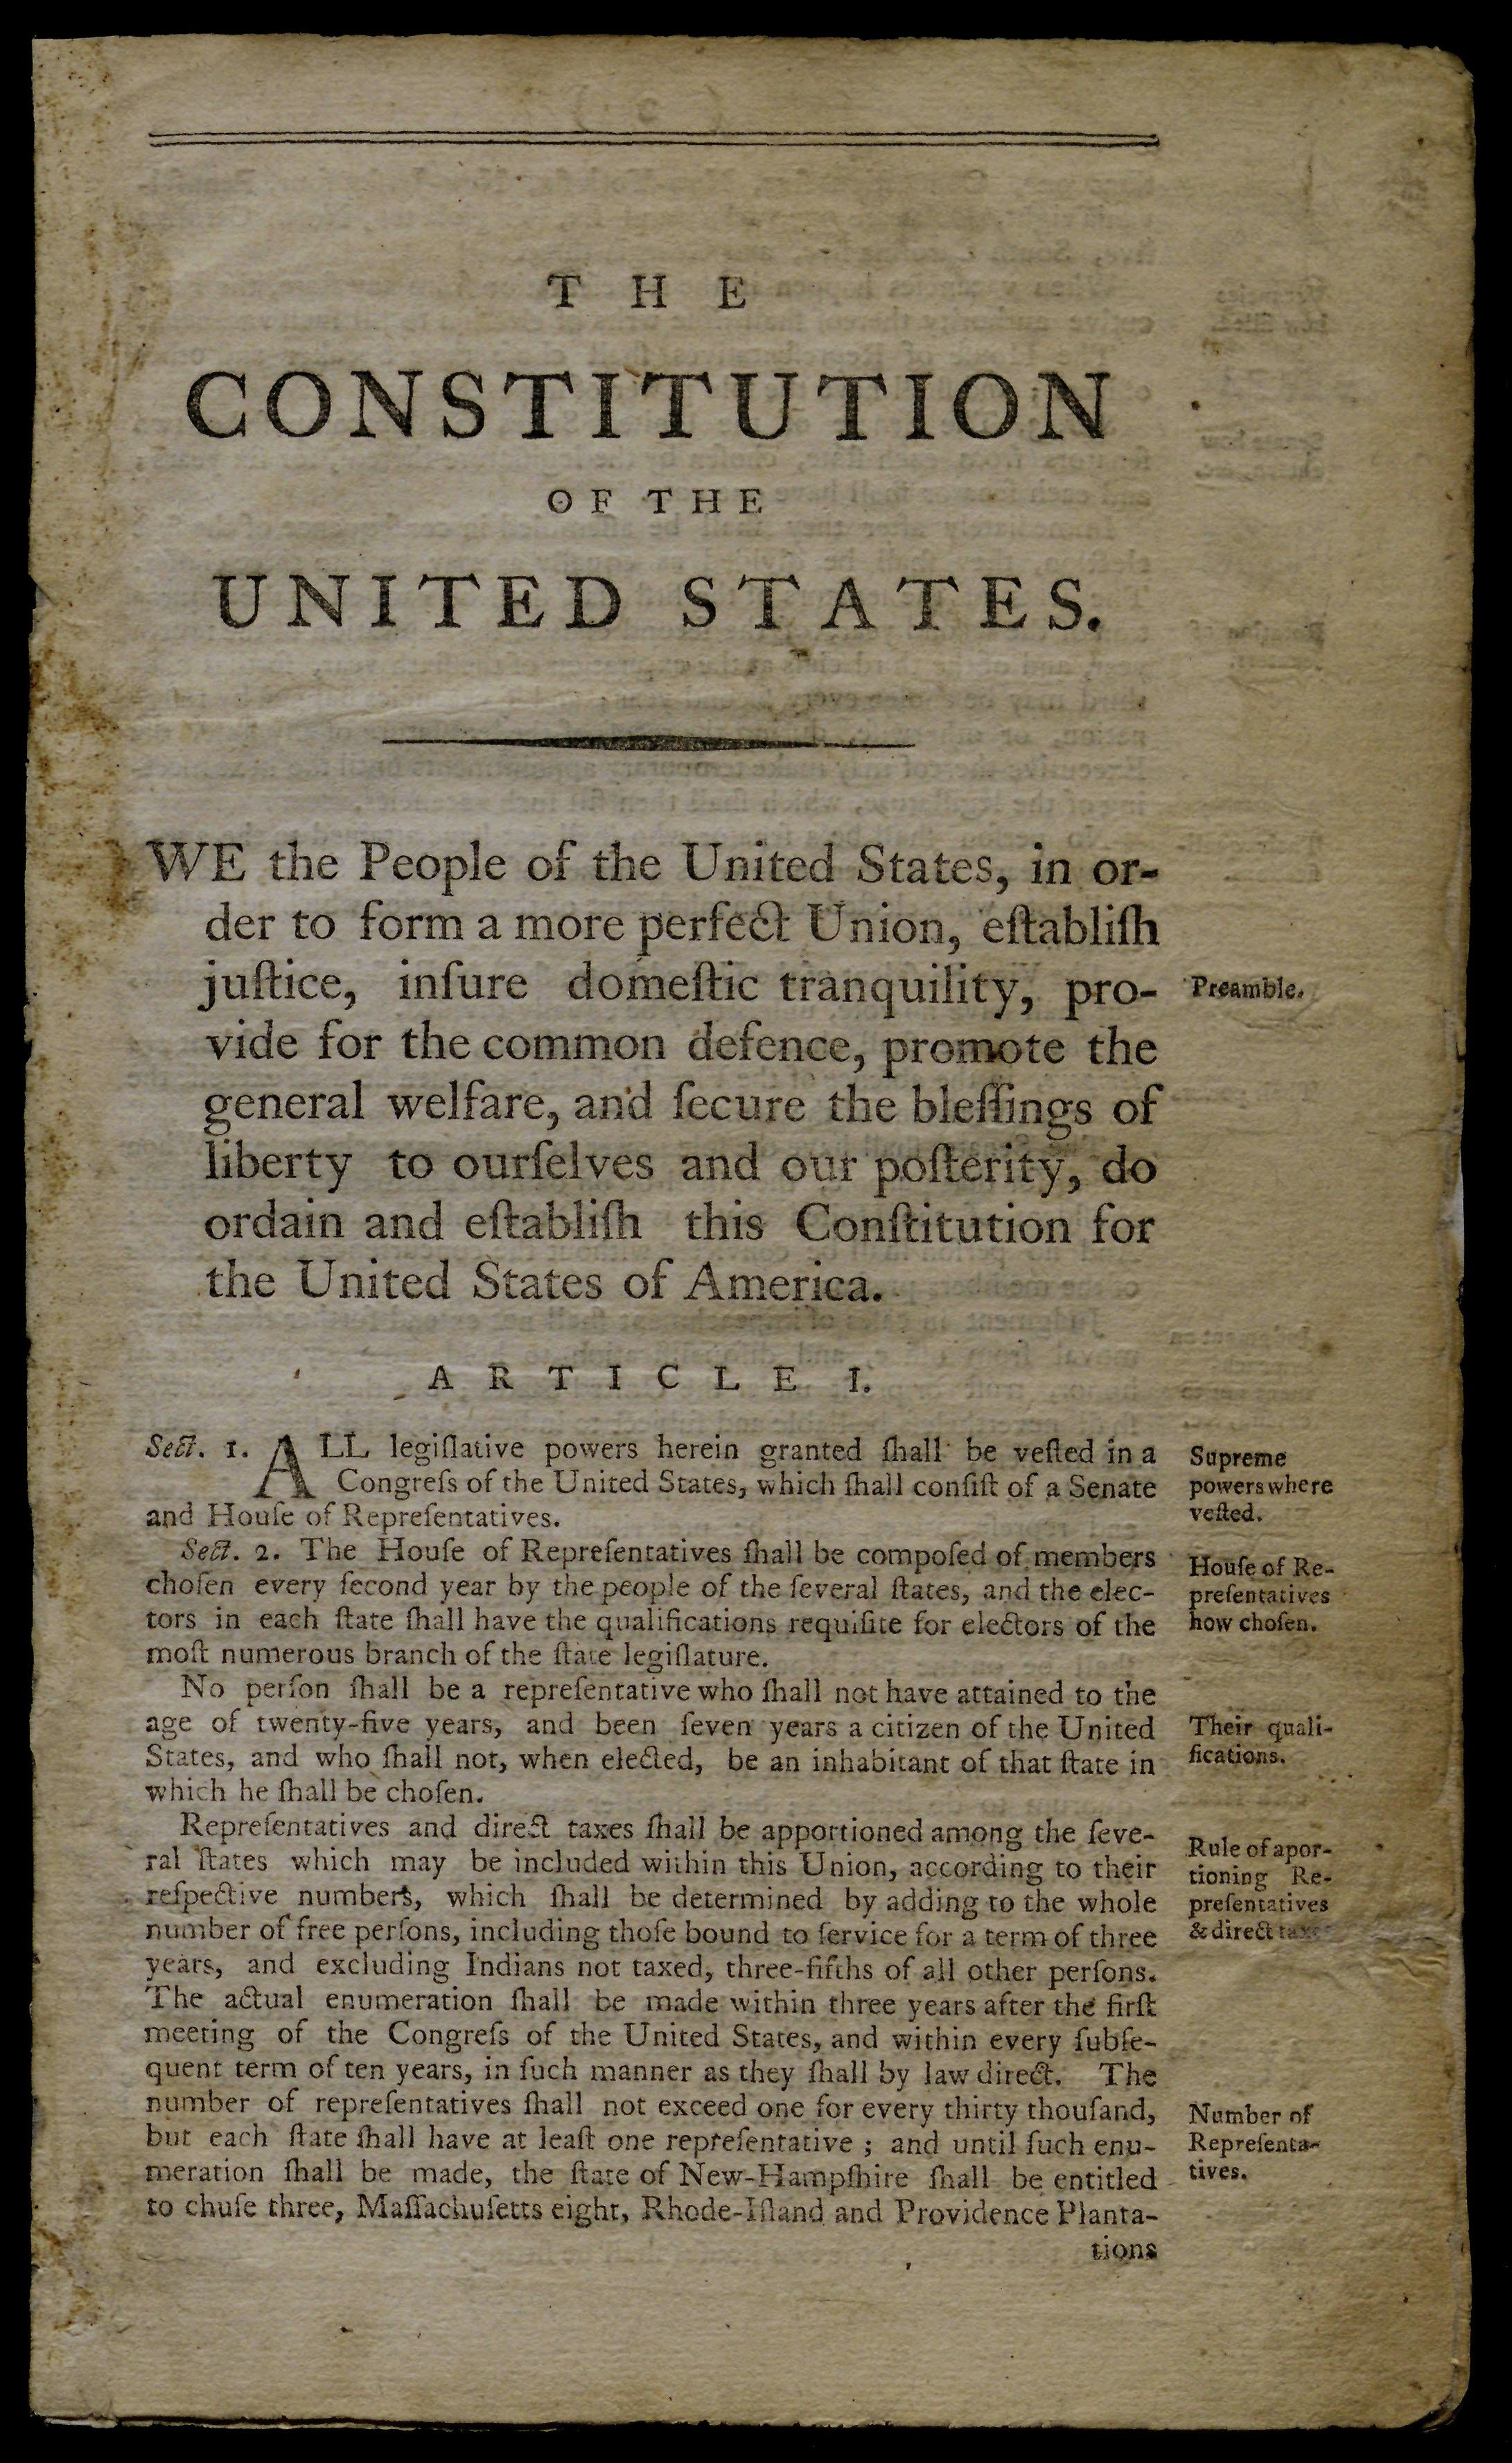 The Constitution of the United States, January 1788. (Gilder Lehrman Collection)